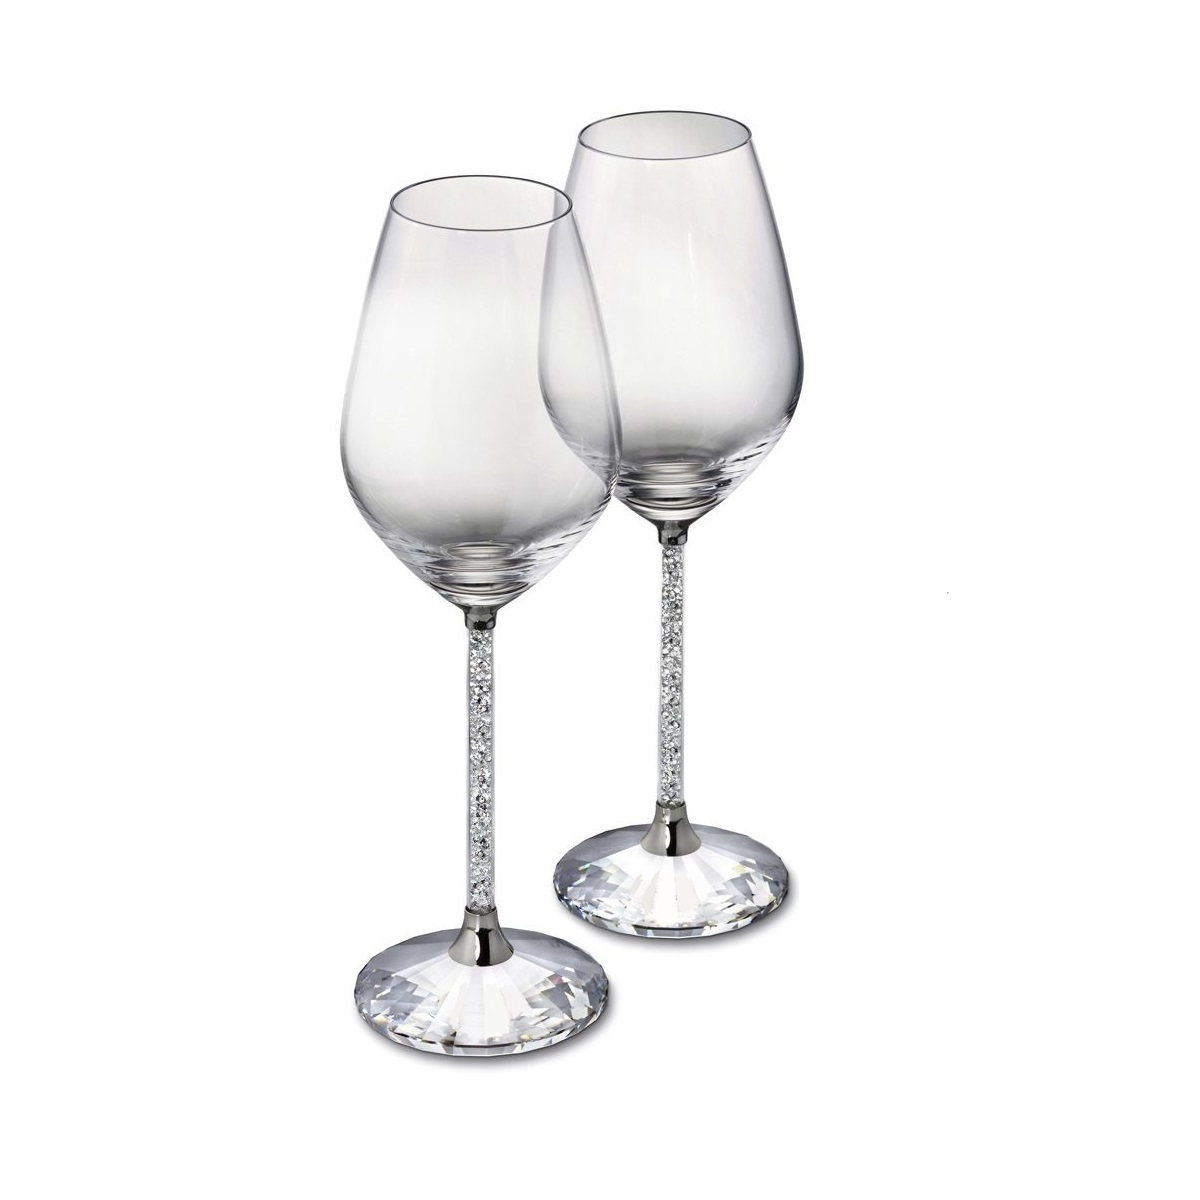 Crystal Stemware Wine Glasses Swarovski Crystal Wine Glasses And Decanter